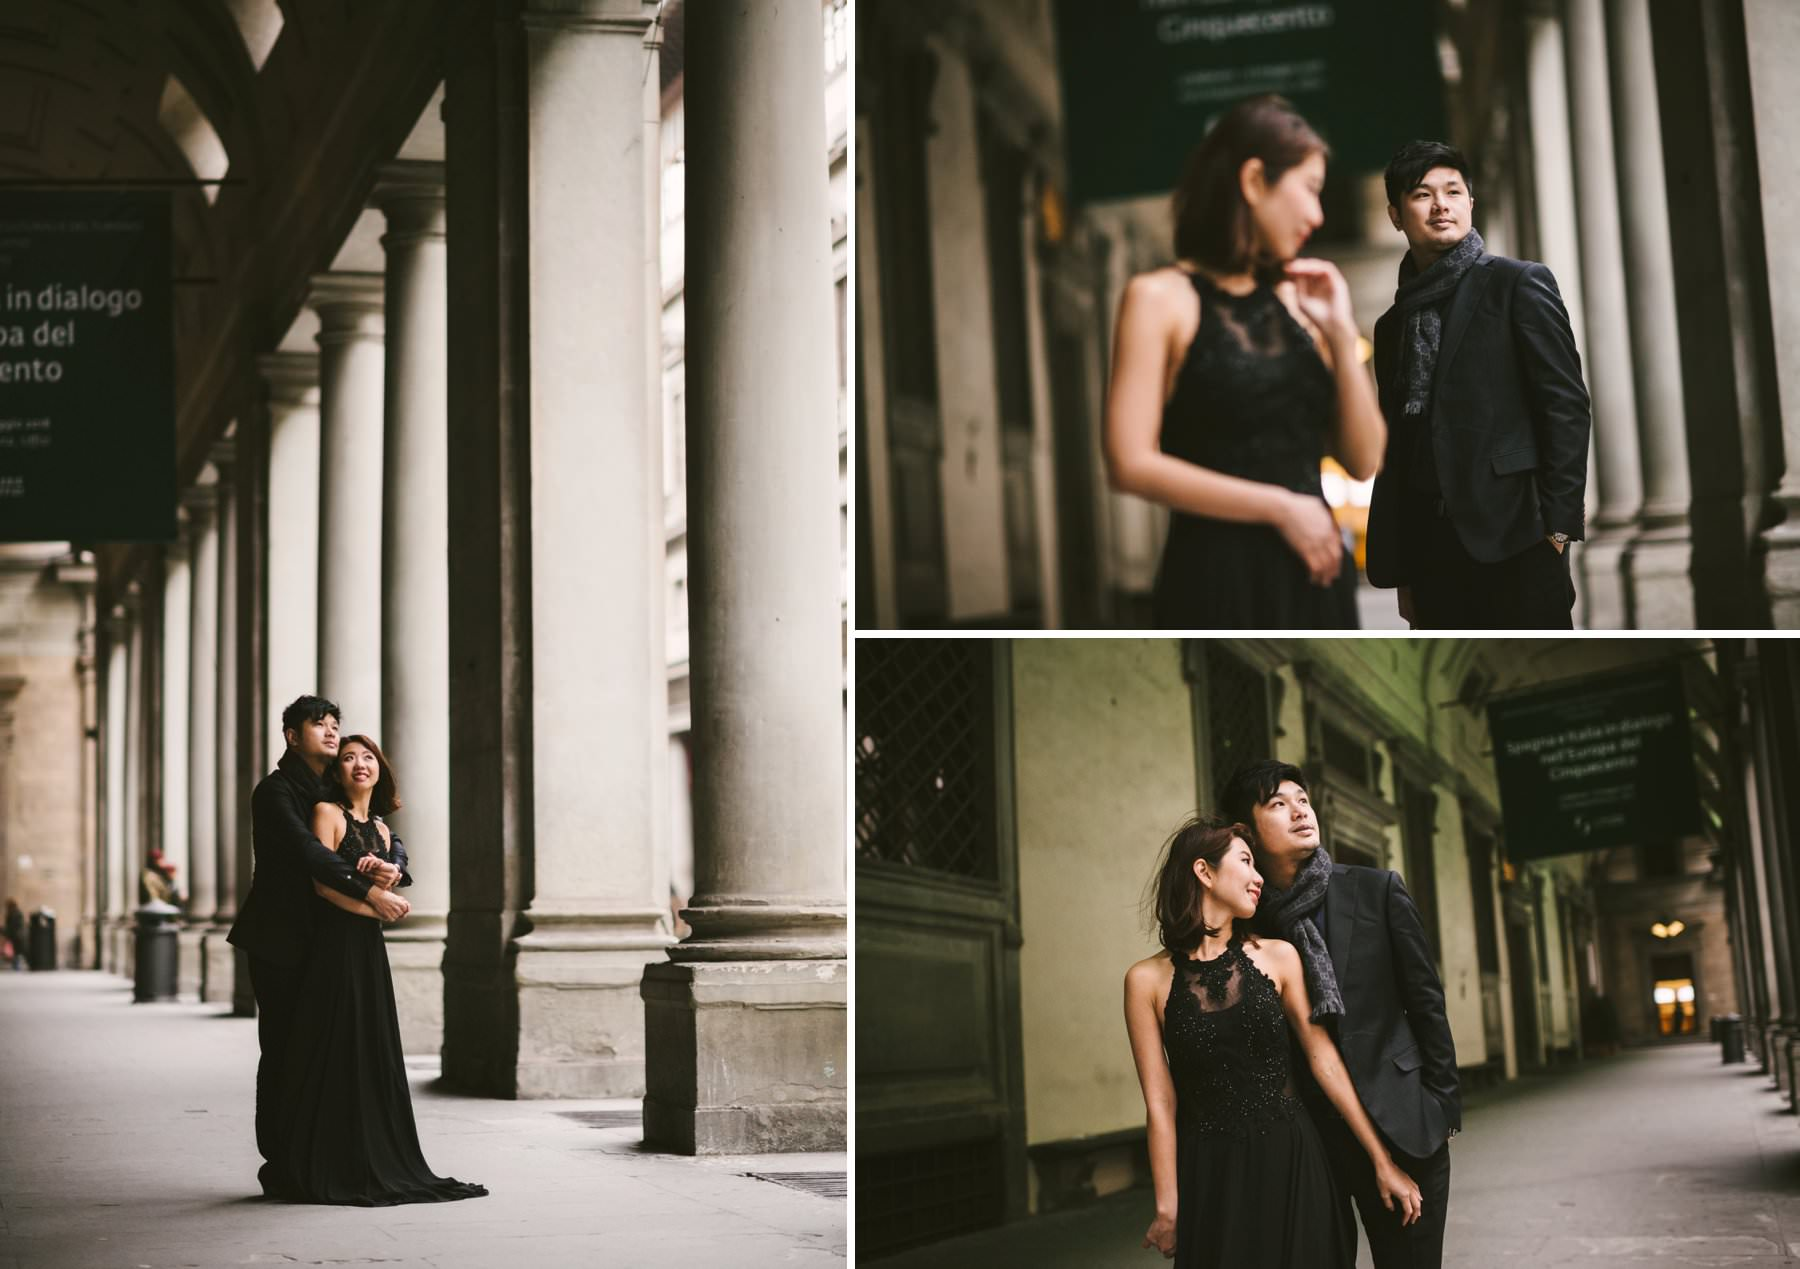 Engagement photos in Uffizi Art Gallery near Palazzo Vecchio in the center of Florence. Photos by the vacation photographer in Tuscany Gabriele Fani.